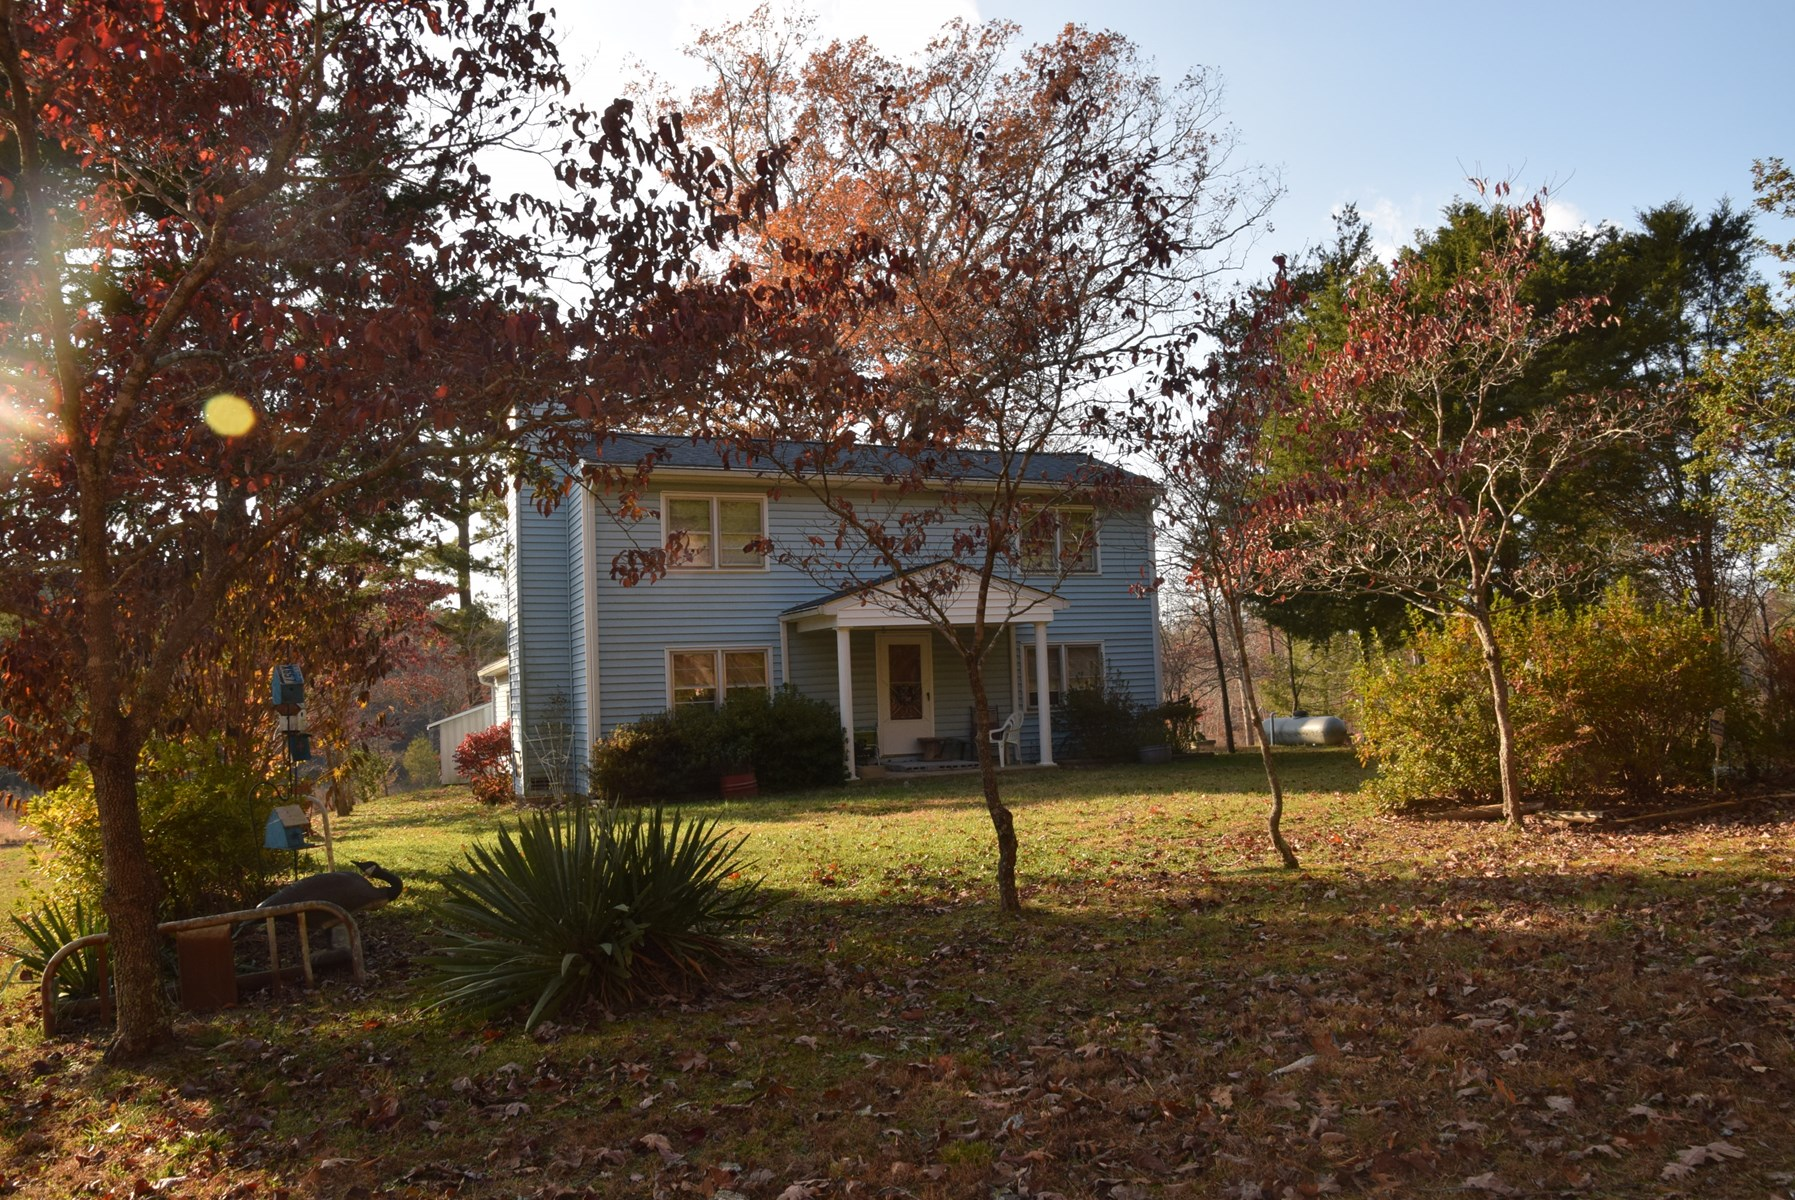 29 ac. Farm and Farm House for Sale in Louisa Co., VA